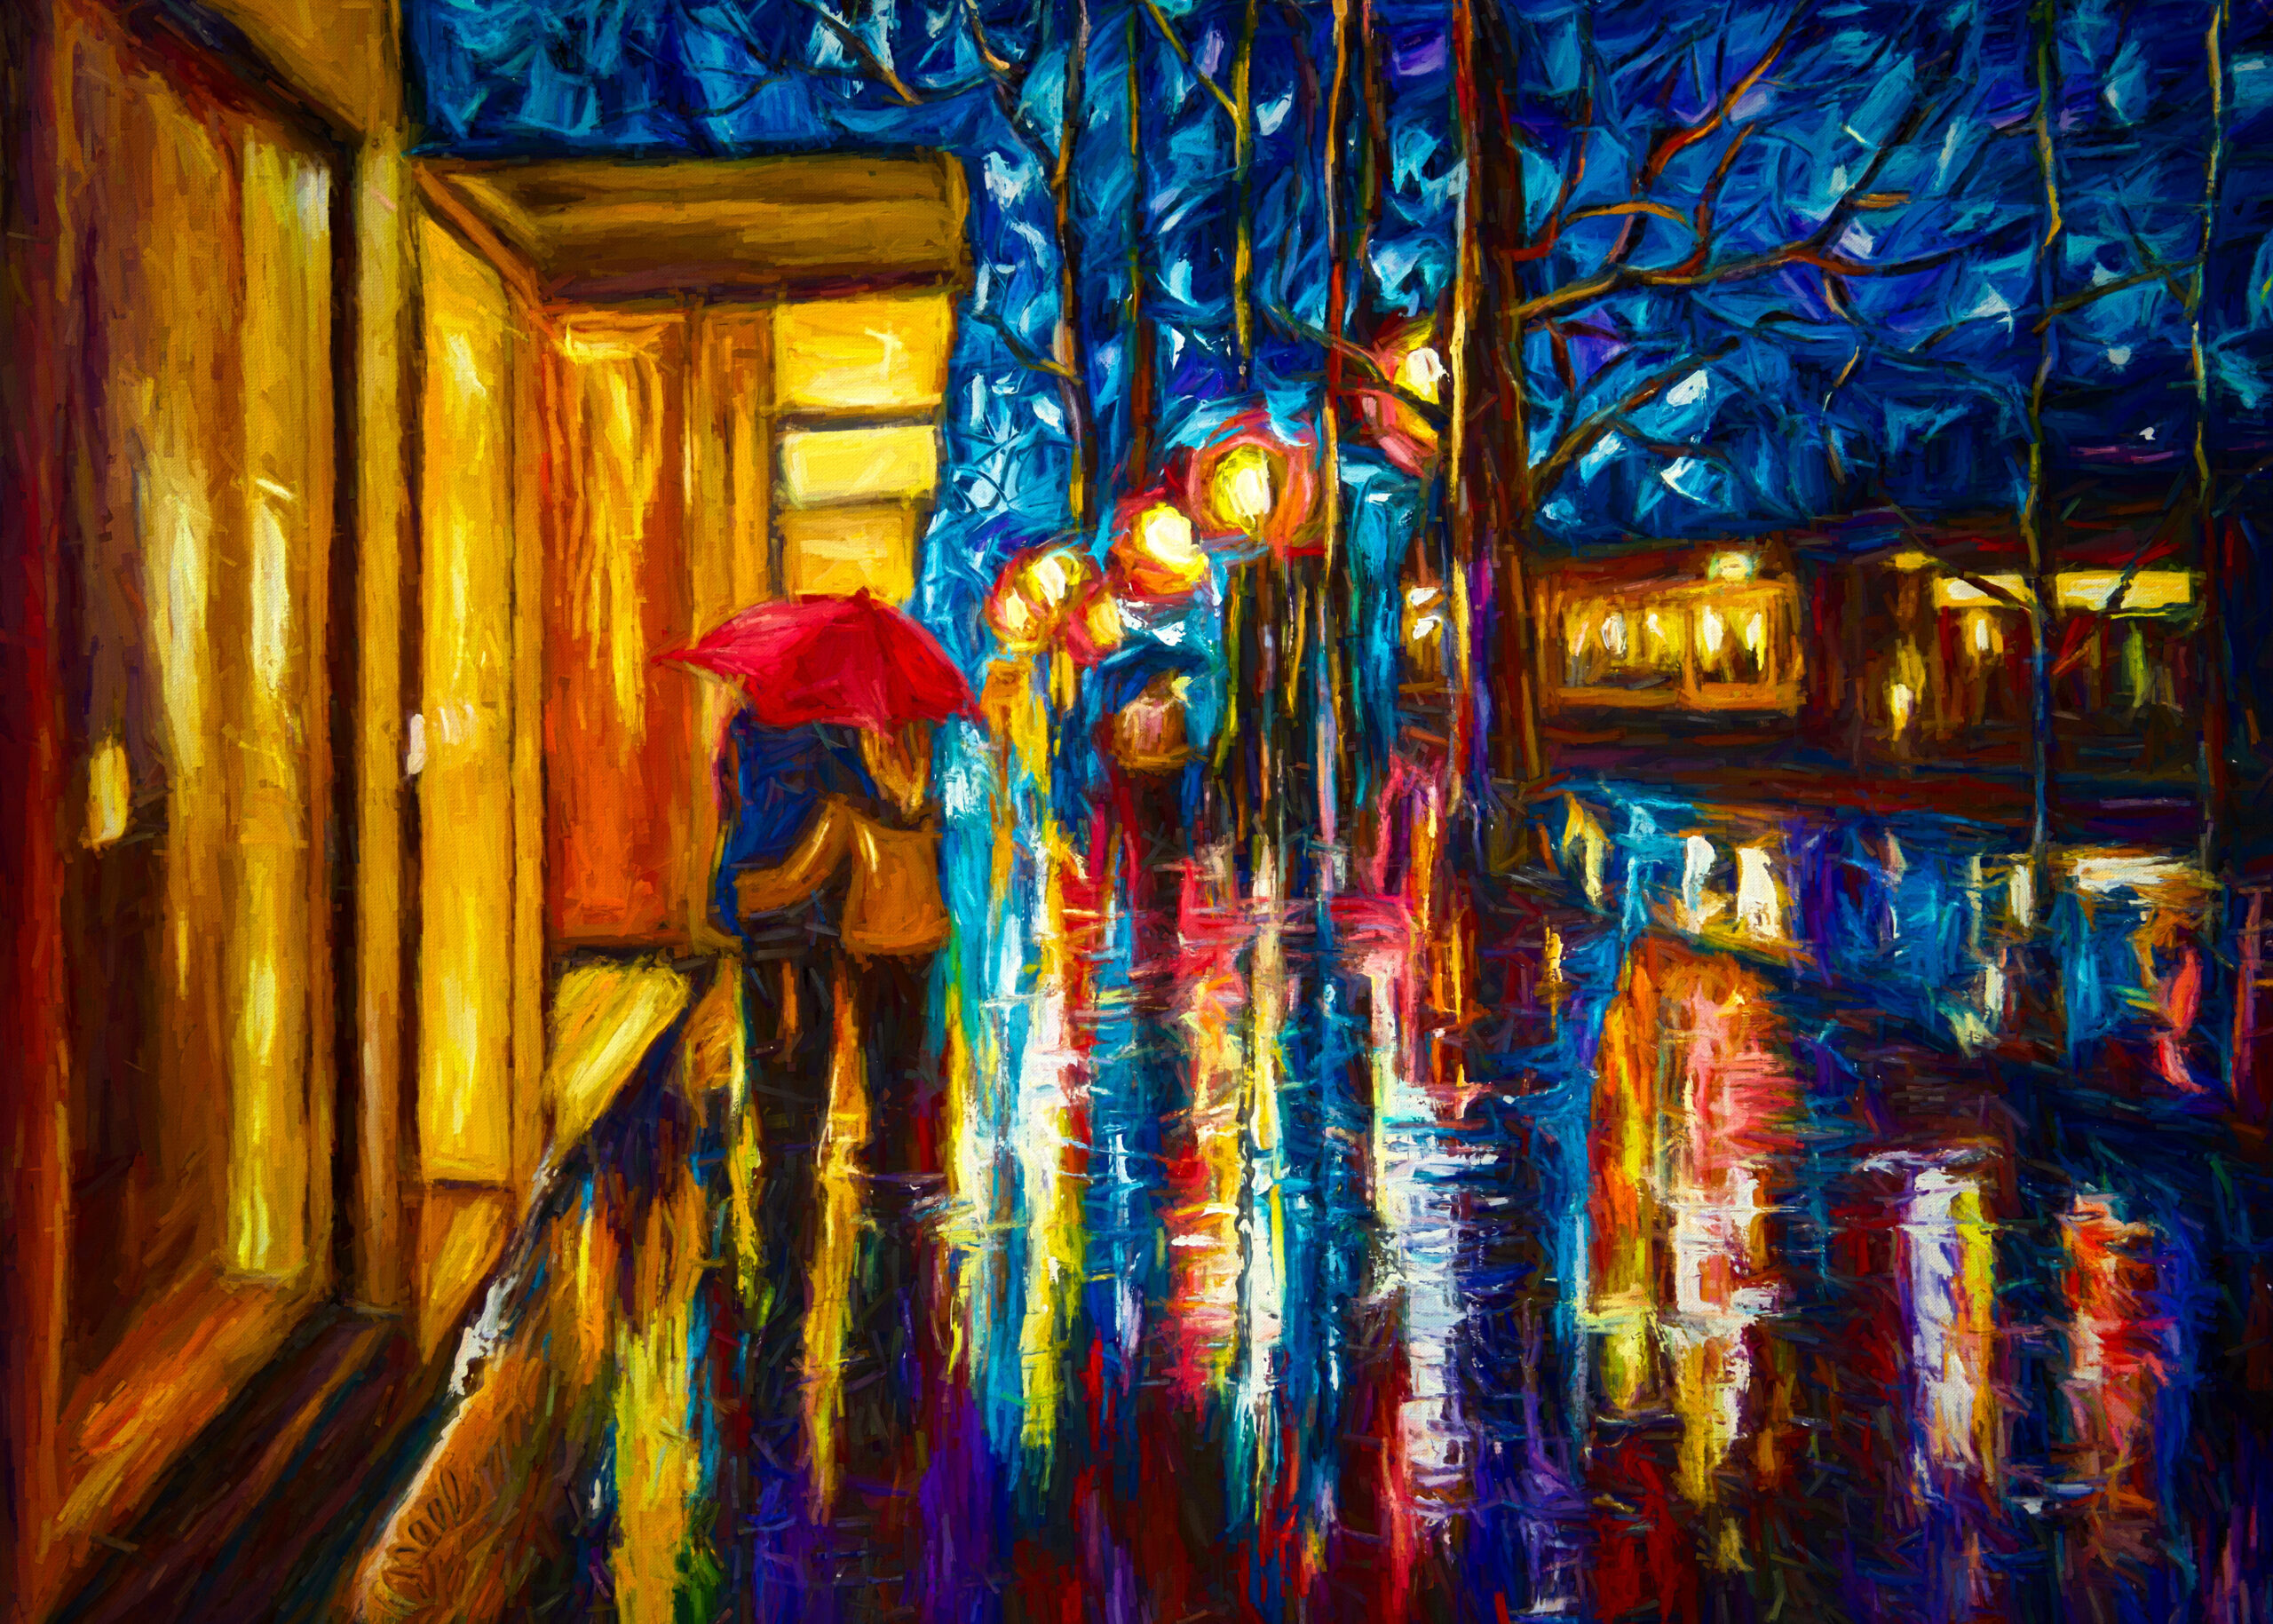 Love In The Rain  May every sunrise hold more promise and every sunset hold more peace .. ~ Umair Siddiqui   Love in the Rain. Textured palette knife painting touched with digital oil brushes for night glow effect for prints. A beautiful, romantic piece bathed in colorful glowing light and textures radiating intense energy and much love. Lively and spontaneous brush strokes were used in order to capture the momentary effects of street lights and reflection encased by the endless atmosphere. Give your home a beam of vibrance or express your sentiment to someone else through this print. Or original oil painting is available on ARTFINDER or my FB page: Side notes for original artwork: Textured Palette Knife Painting made with knife from oil paints, canvas and love. The sides of the canvas are painted in black, no frame require unless desired. The images in context are not to scale and are for display purposes only. Delivery Guarantee? My works, originals, one of a kind, are very carefully packaged, a tracking code is provided and they are all insured. You can refer to the reviews for satisfied customers.  Please feel free to message me if you have any questions regarding my works. THANK YOU for visiting my gallery and I really hope my artworks have served it s purpose and brighten your day! Shout out to Artfinder and to all my wonderful collectors! (https://www.artfinder.com/artists/top-100-artis...) Thrilled and honored to be one of the best sellers from USA, Lena Owens  Materials used: professional artist oil paints, brushes, palette knife, gallery wrapped traditional canvas Tags: walking in rain; evening; lovers on a walk; sharing love; fall colors; landscape; autumn; color reflections; lovers; under colorful umbrella; rainy park; alley; palette knife; stroll in a park; original palette knife; umbrellas; cityscape; nightscape; love; lovers; meeting; date; street; square; rendezvous; boutique; rain; rainy; buy paintings; buy painting; original painting; oil painting;